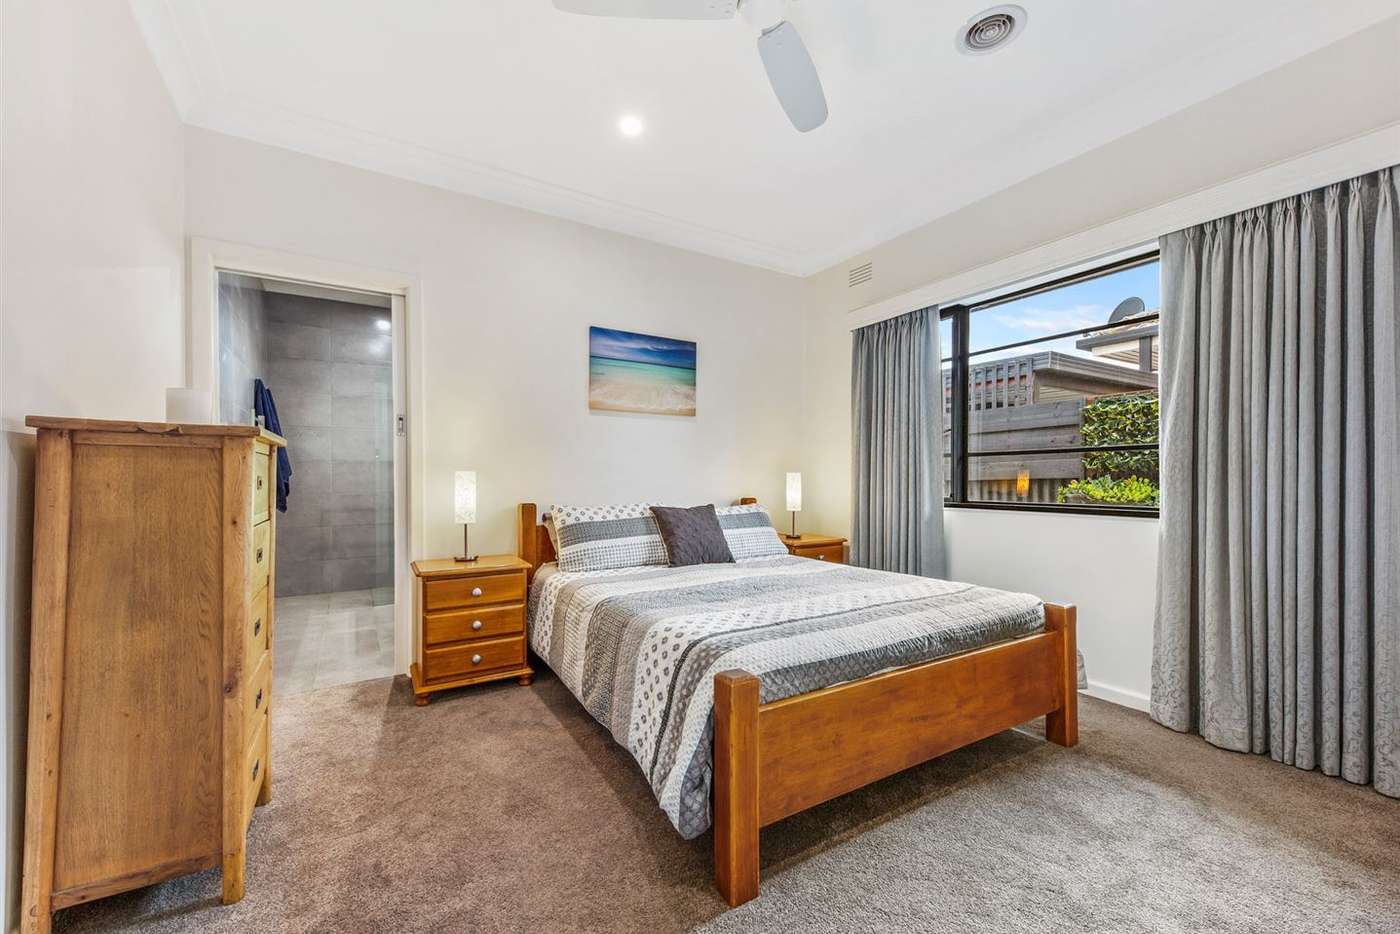 Seventh view of Homely house listing, 24 Steane Street, Wangaratta VIC 3677